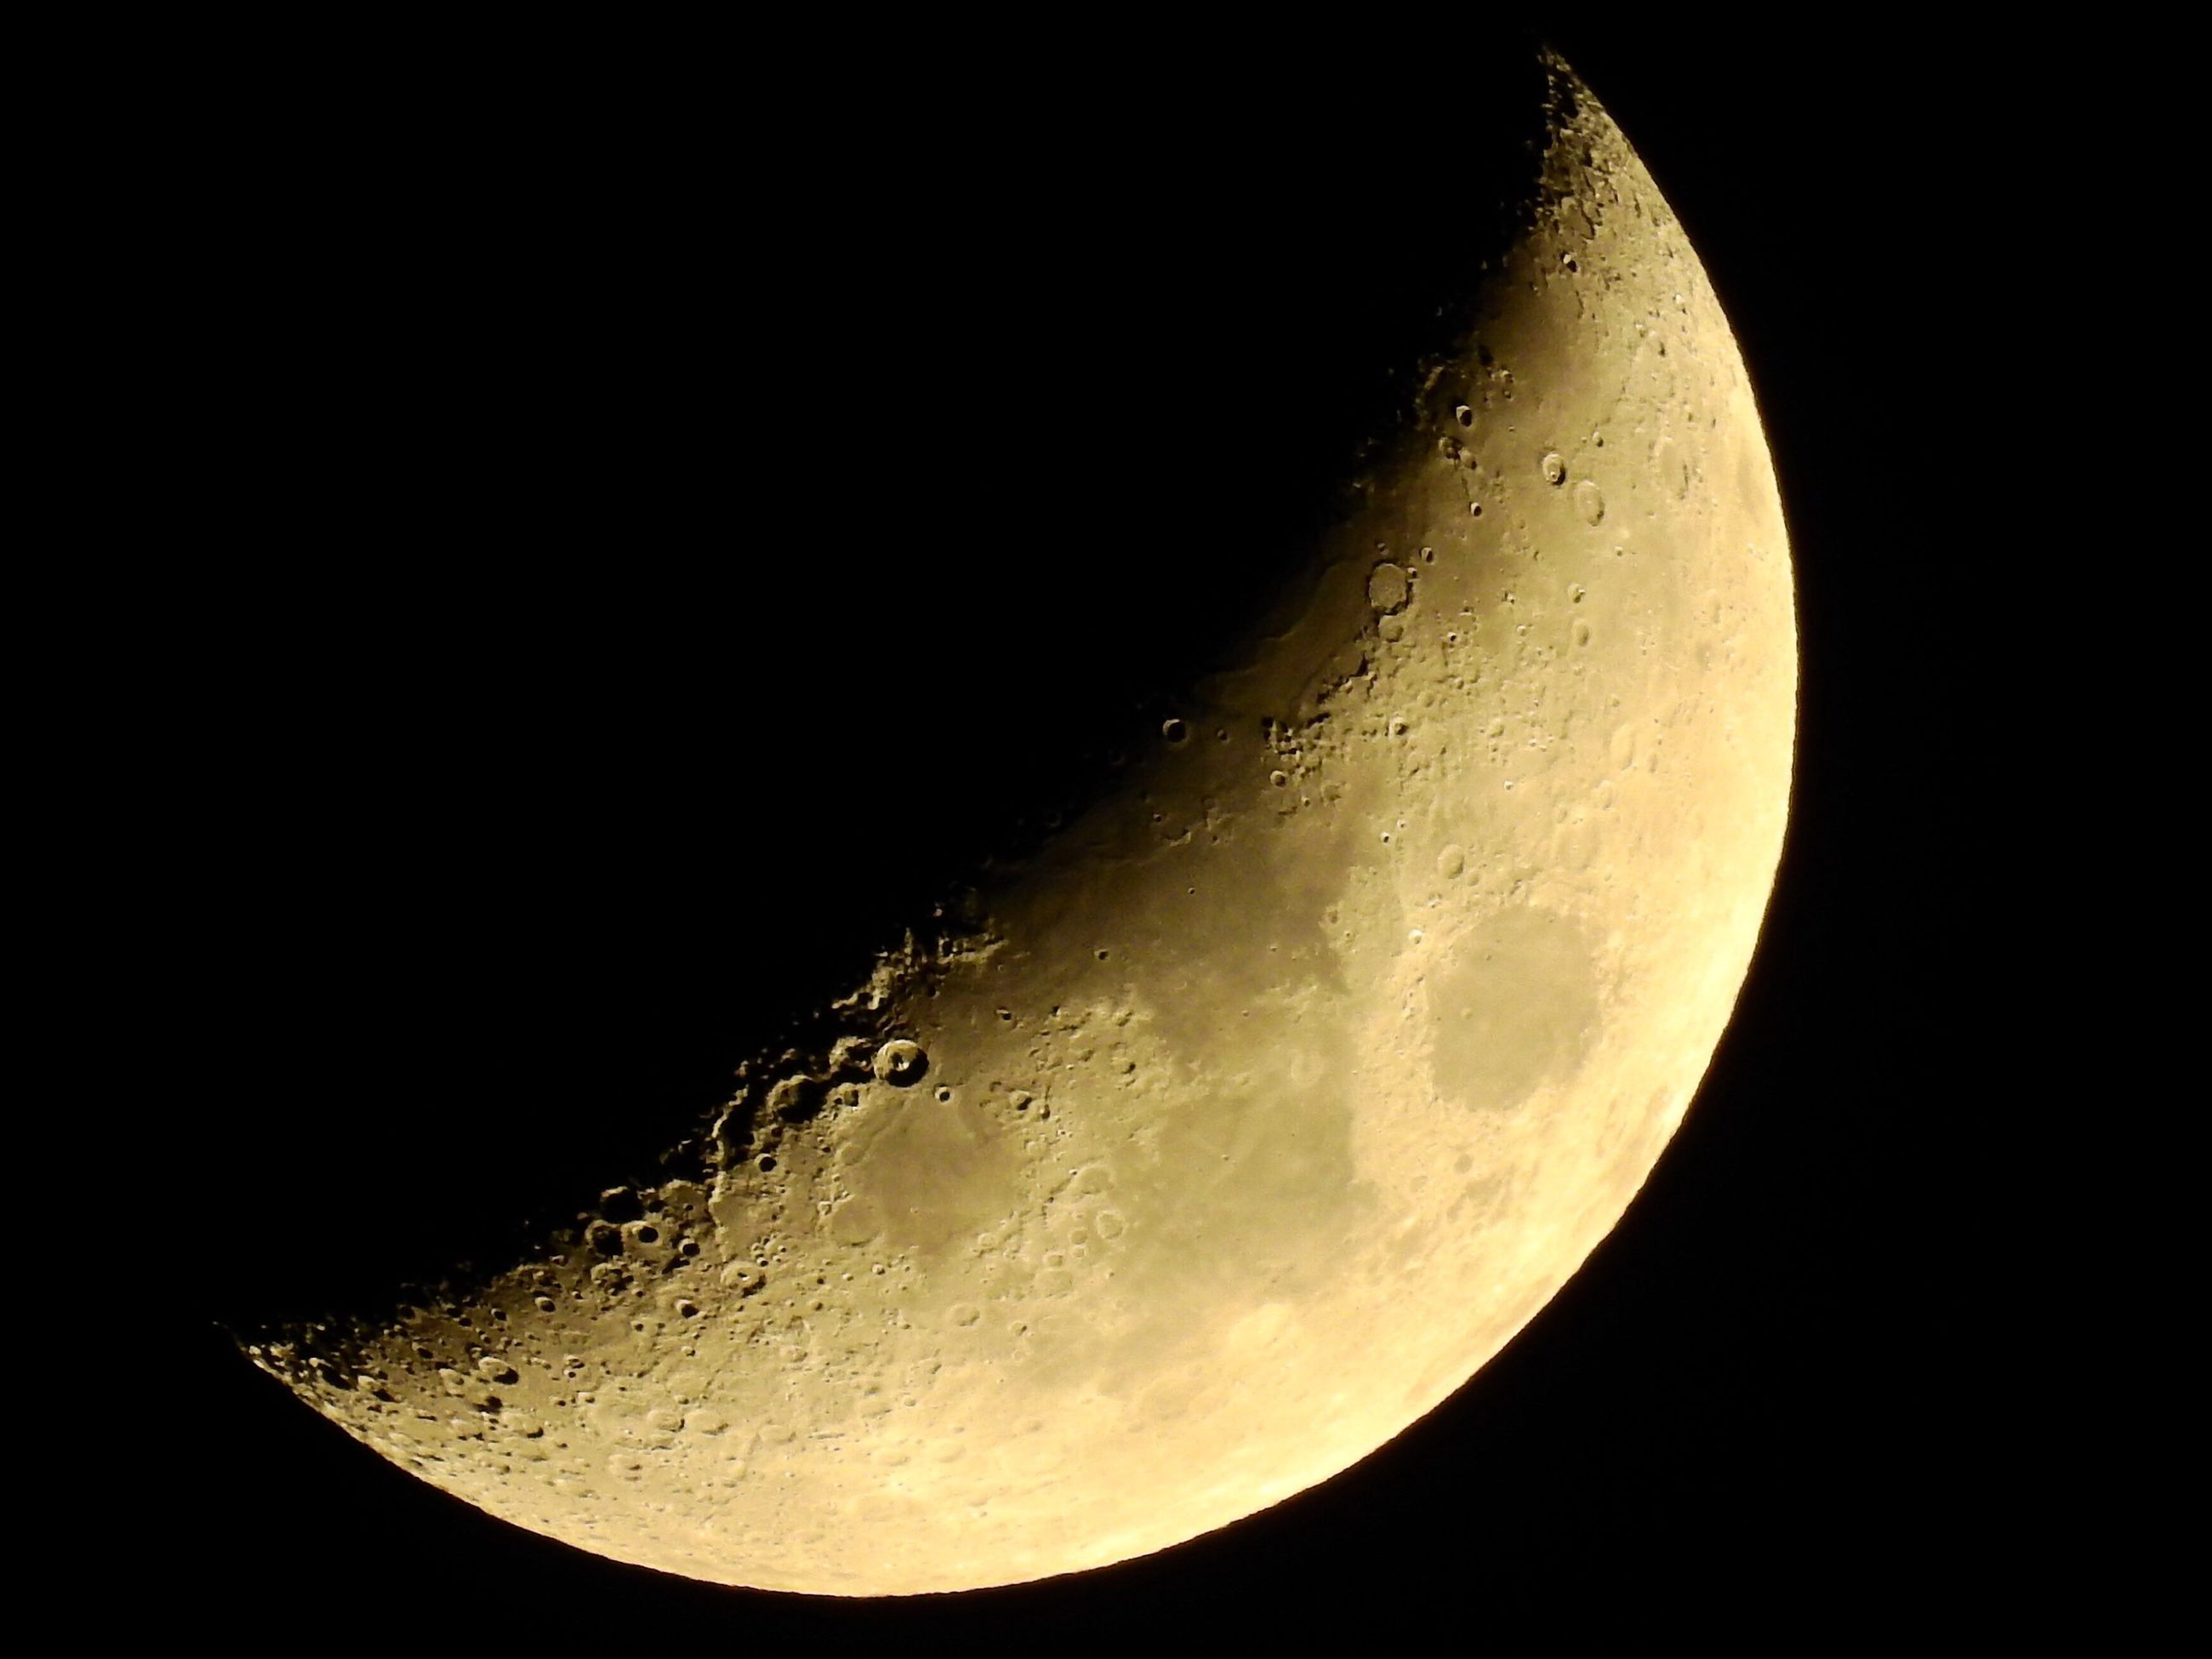 night, astronomy, moon, dark, exploration, space exploration, majestic, space, nature, glowing, sky, beauty in nature, scenics, tranquility, moon surface, outdoors, black background, tranquil scene, curve, no people